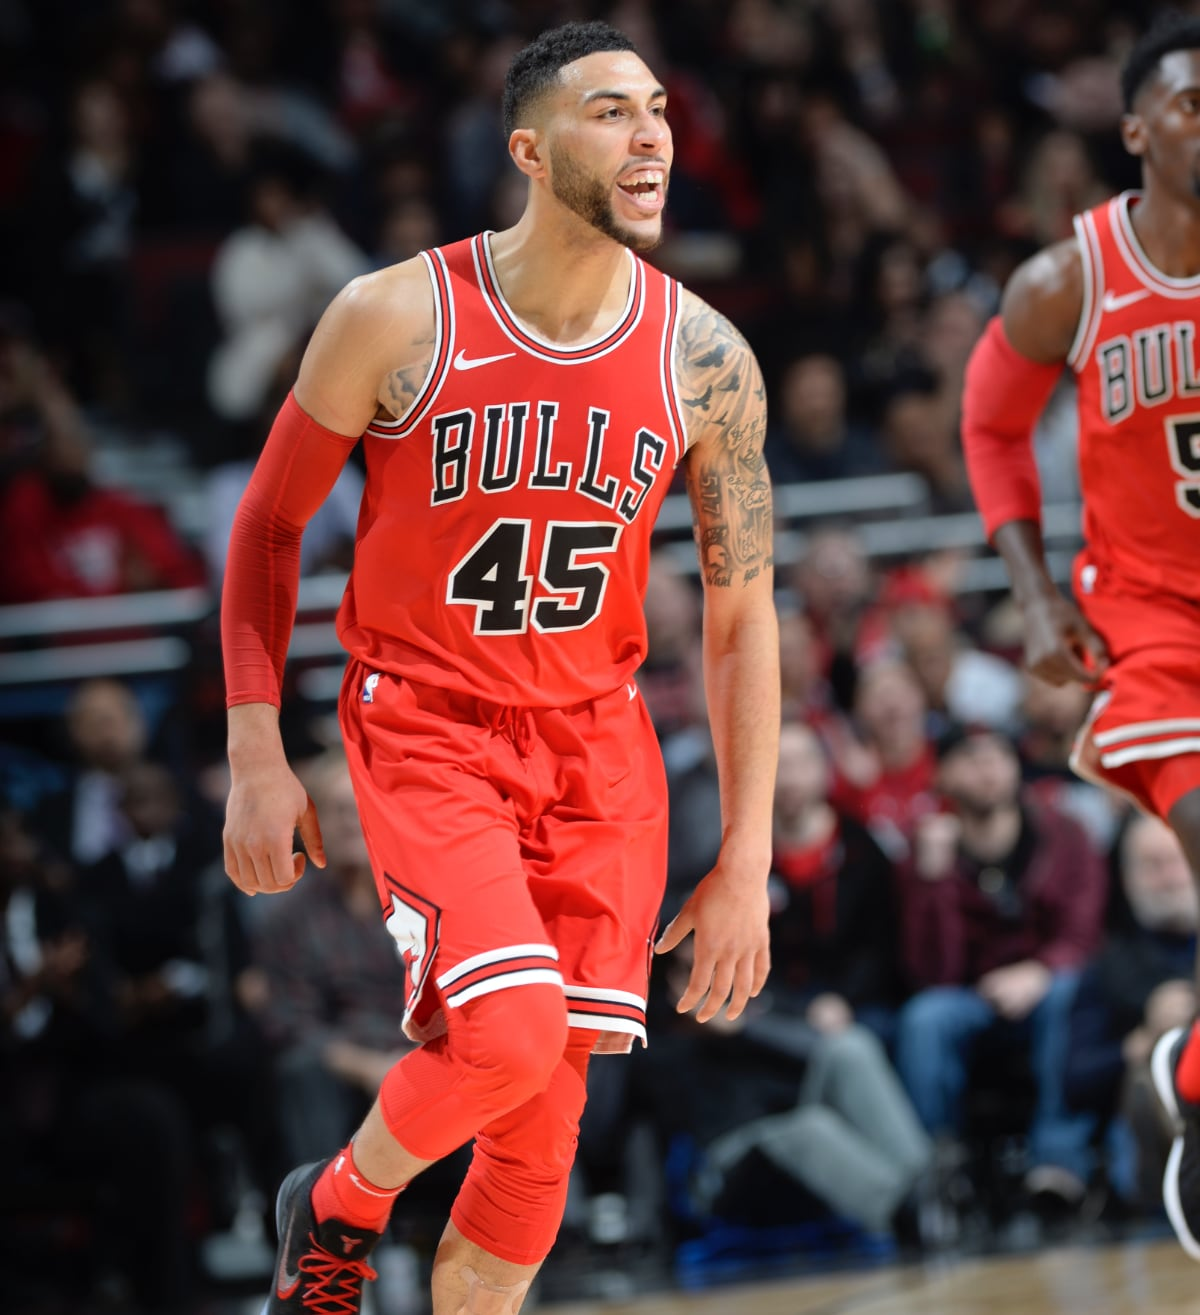 LaVine to make Bulls' debut